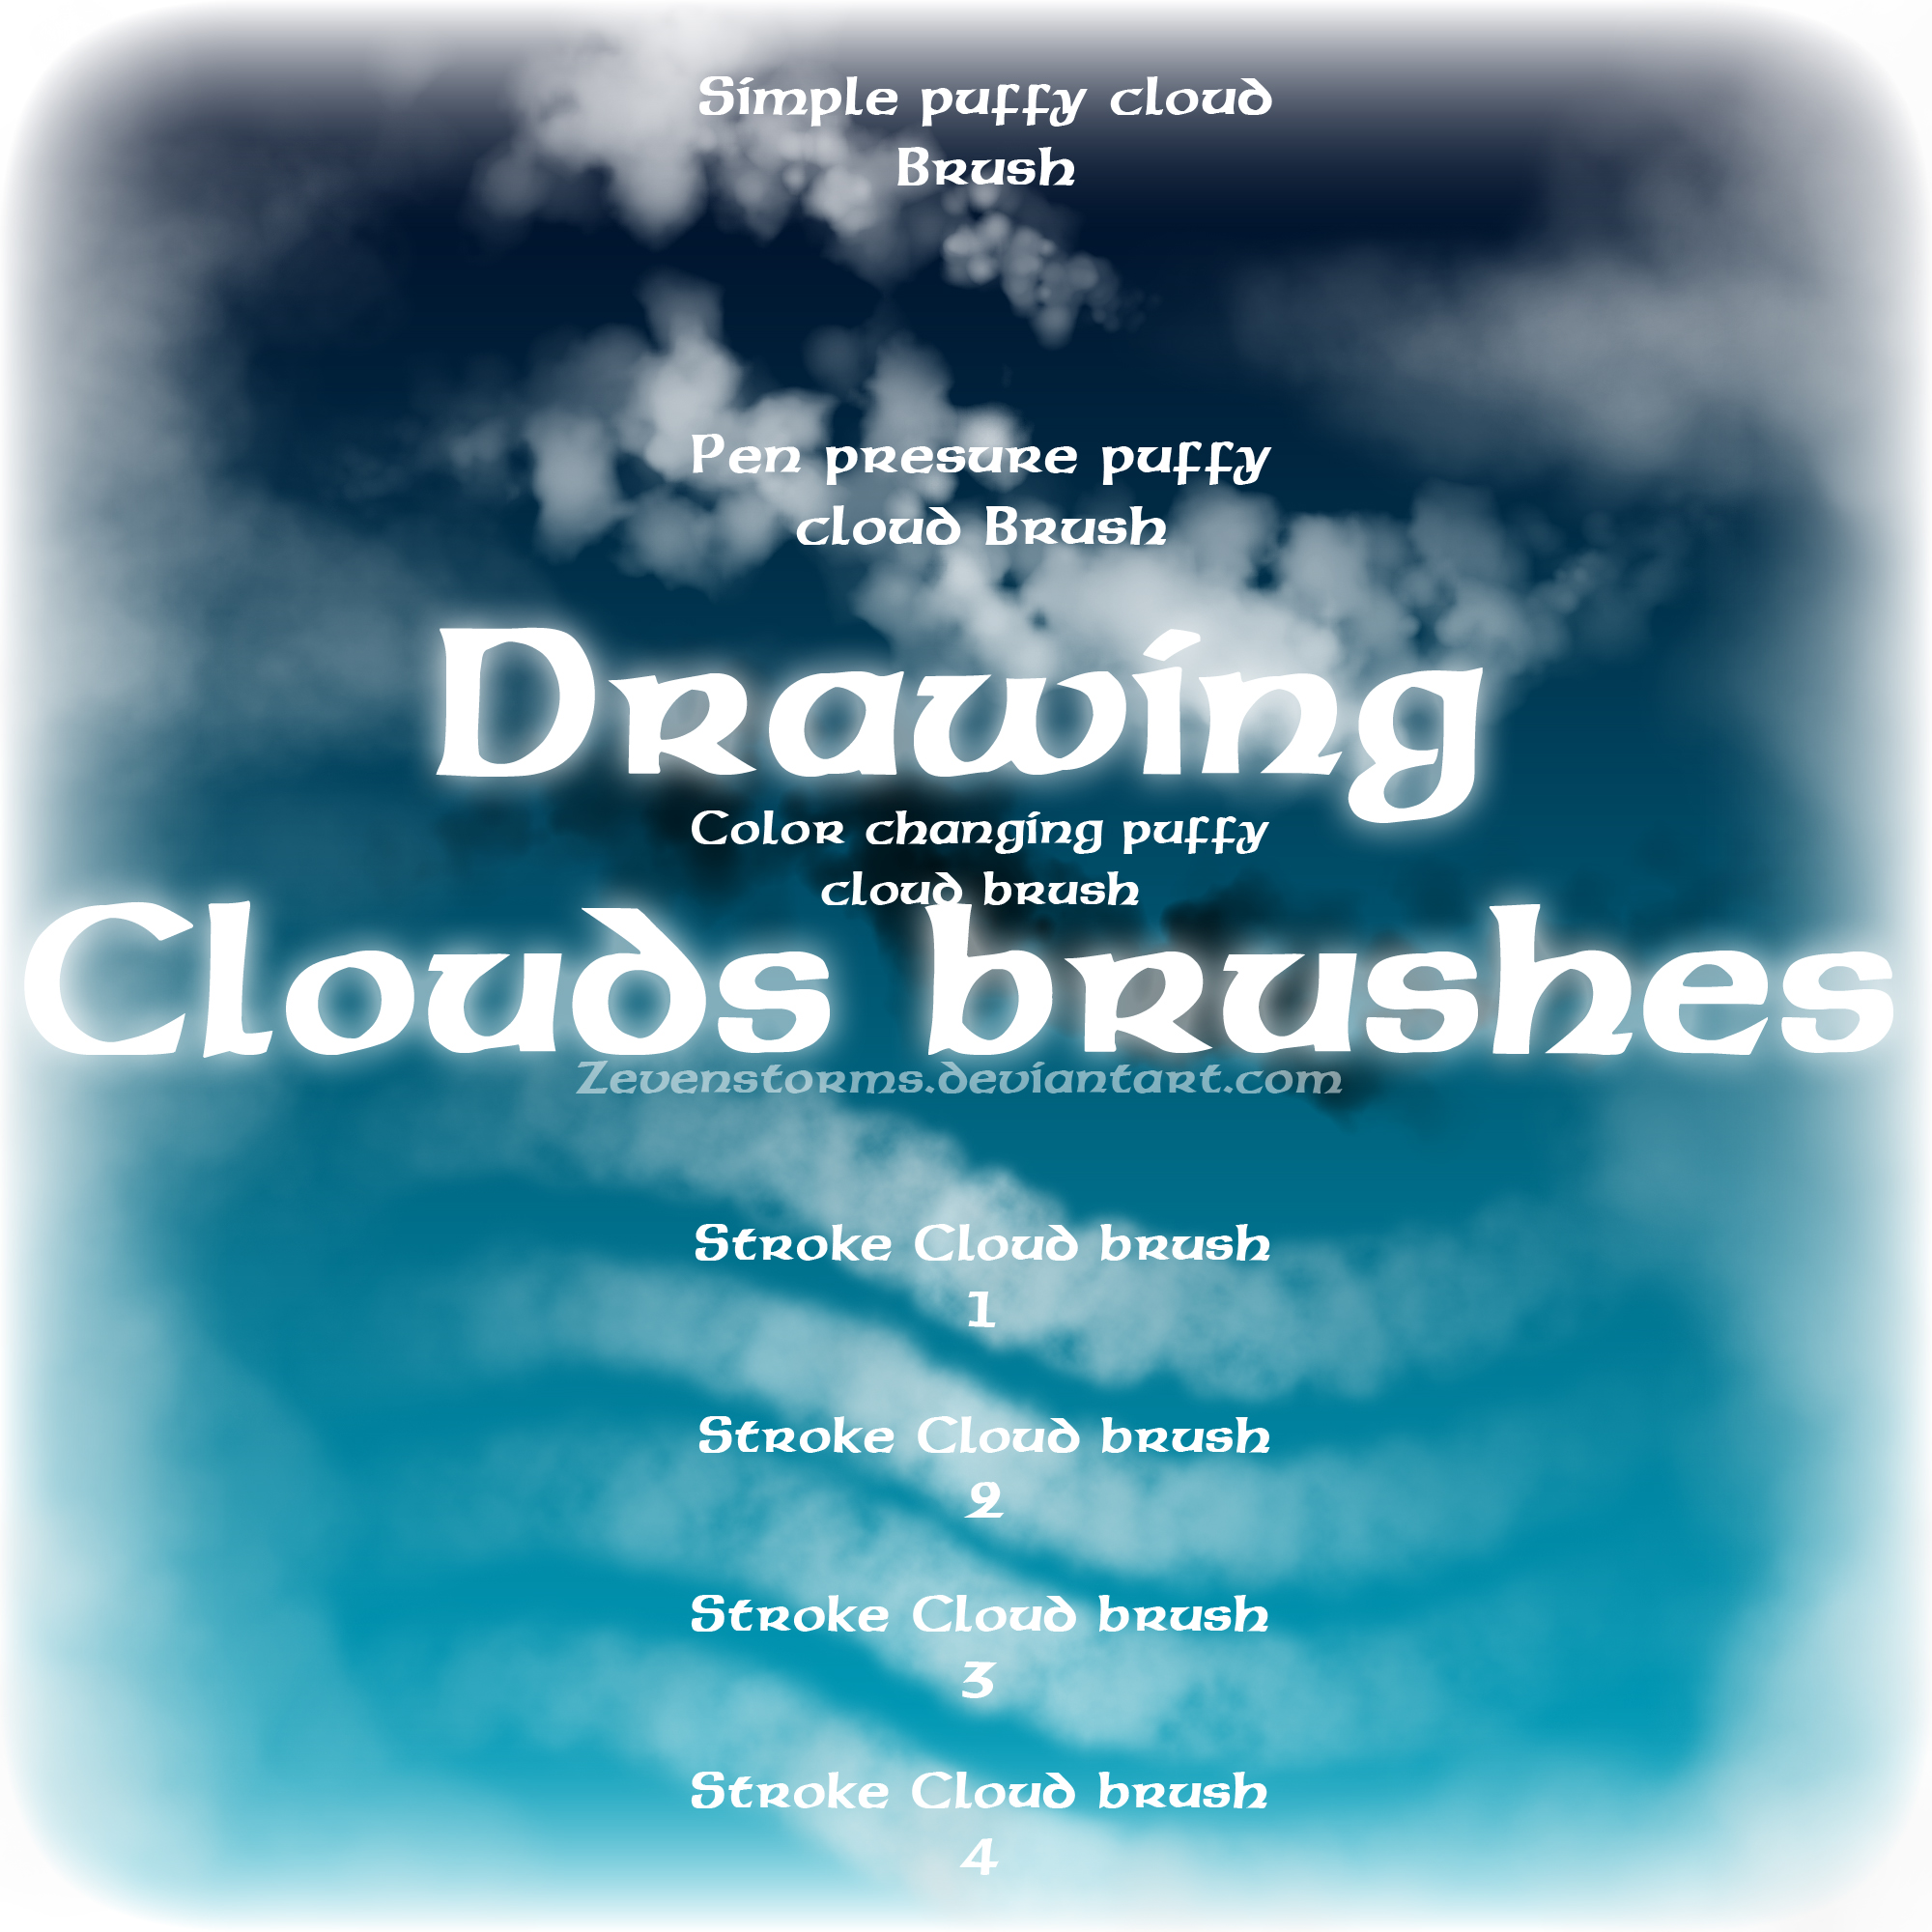 Drawing clouds Brush